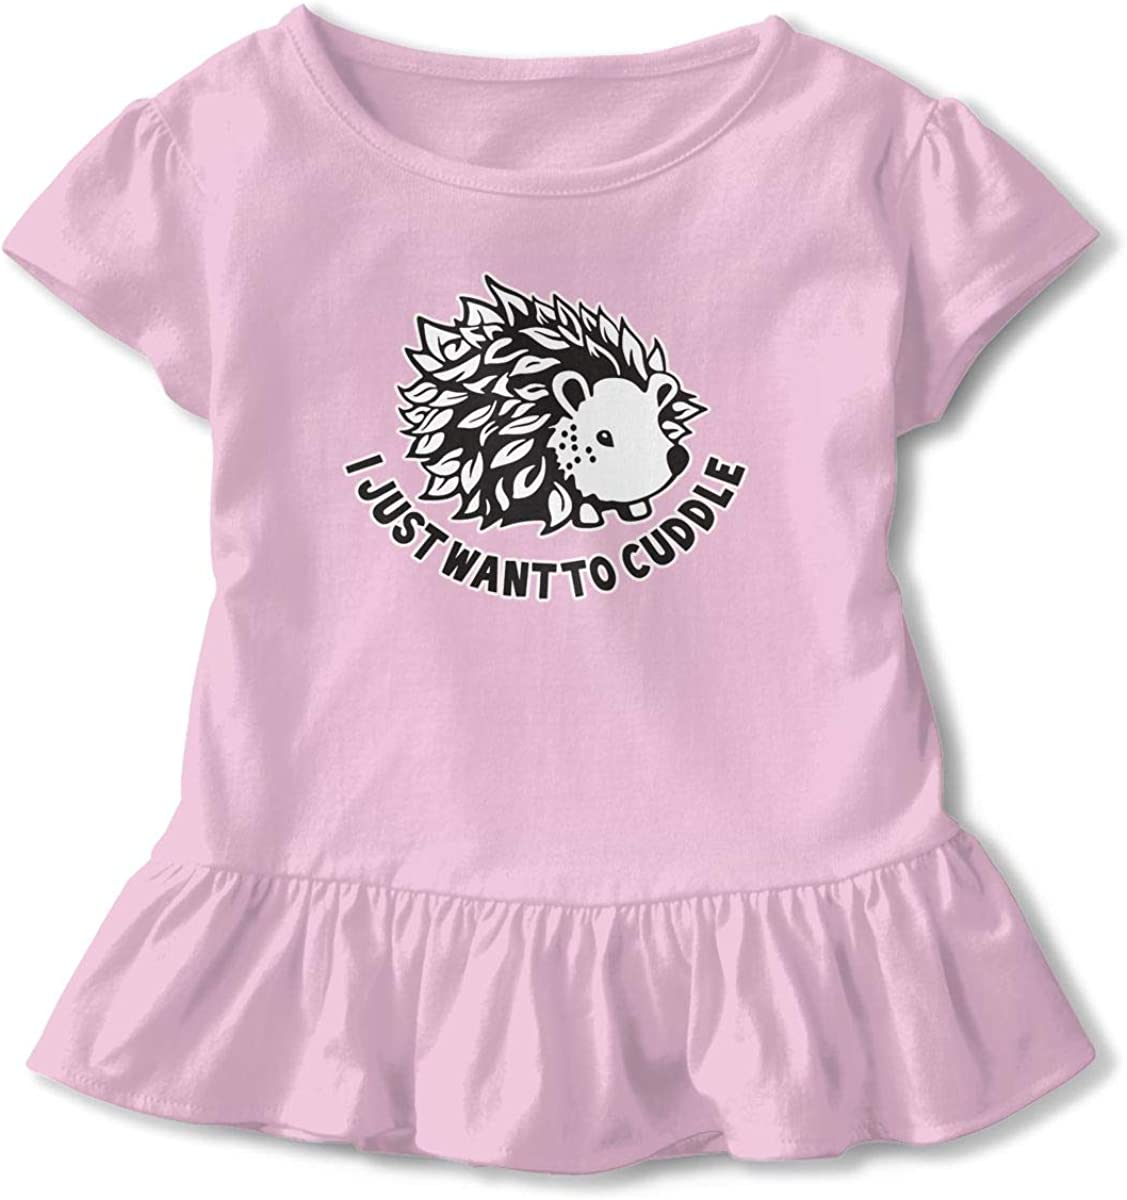 ZP-CCYF I Just Want to Cuddle Toddler Baby Girl Ruffle Short Sleeve T-Shirt Comfortable Cotton T Shirts